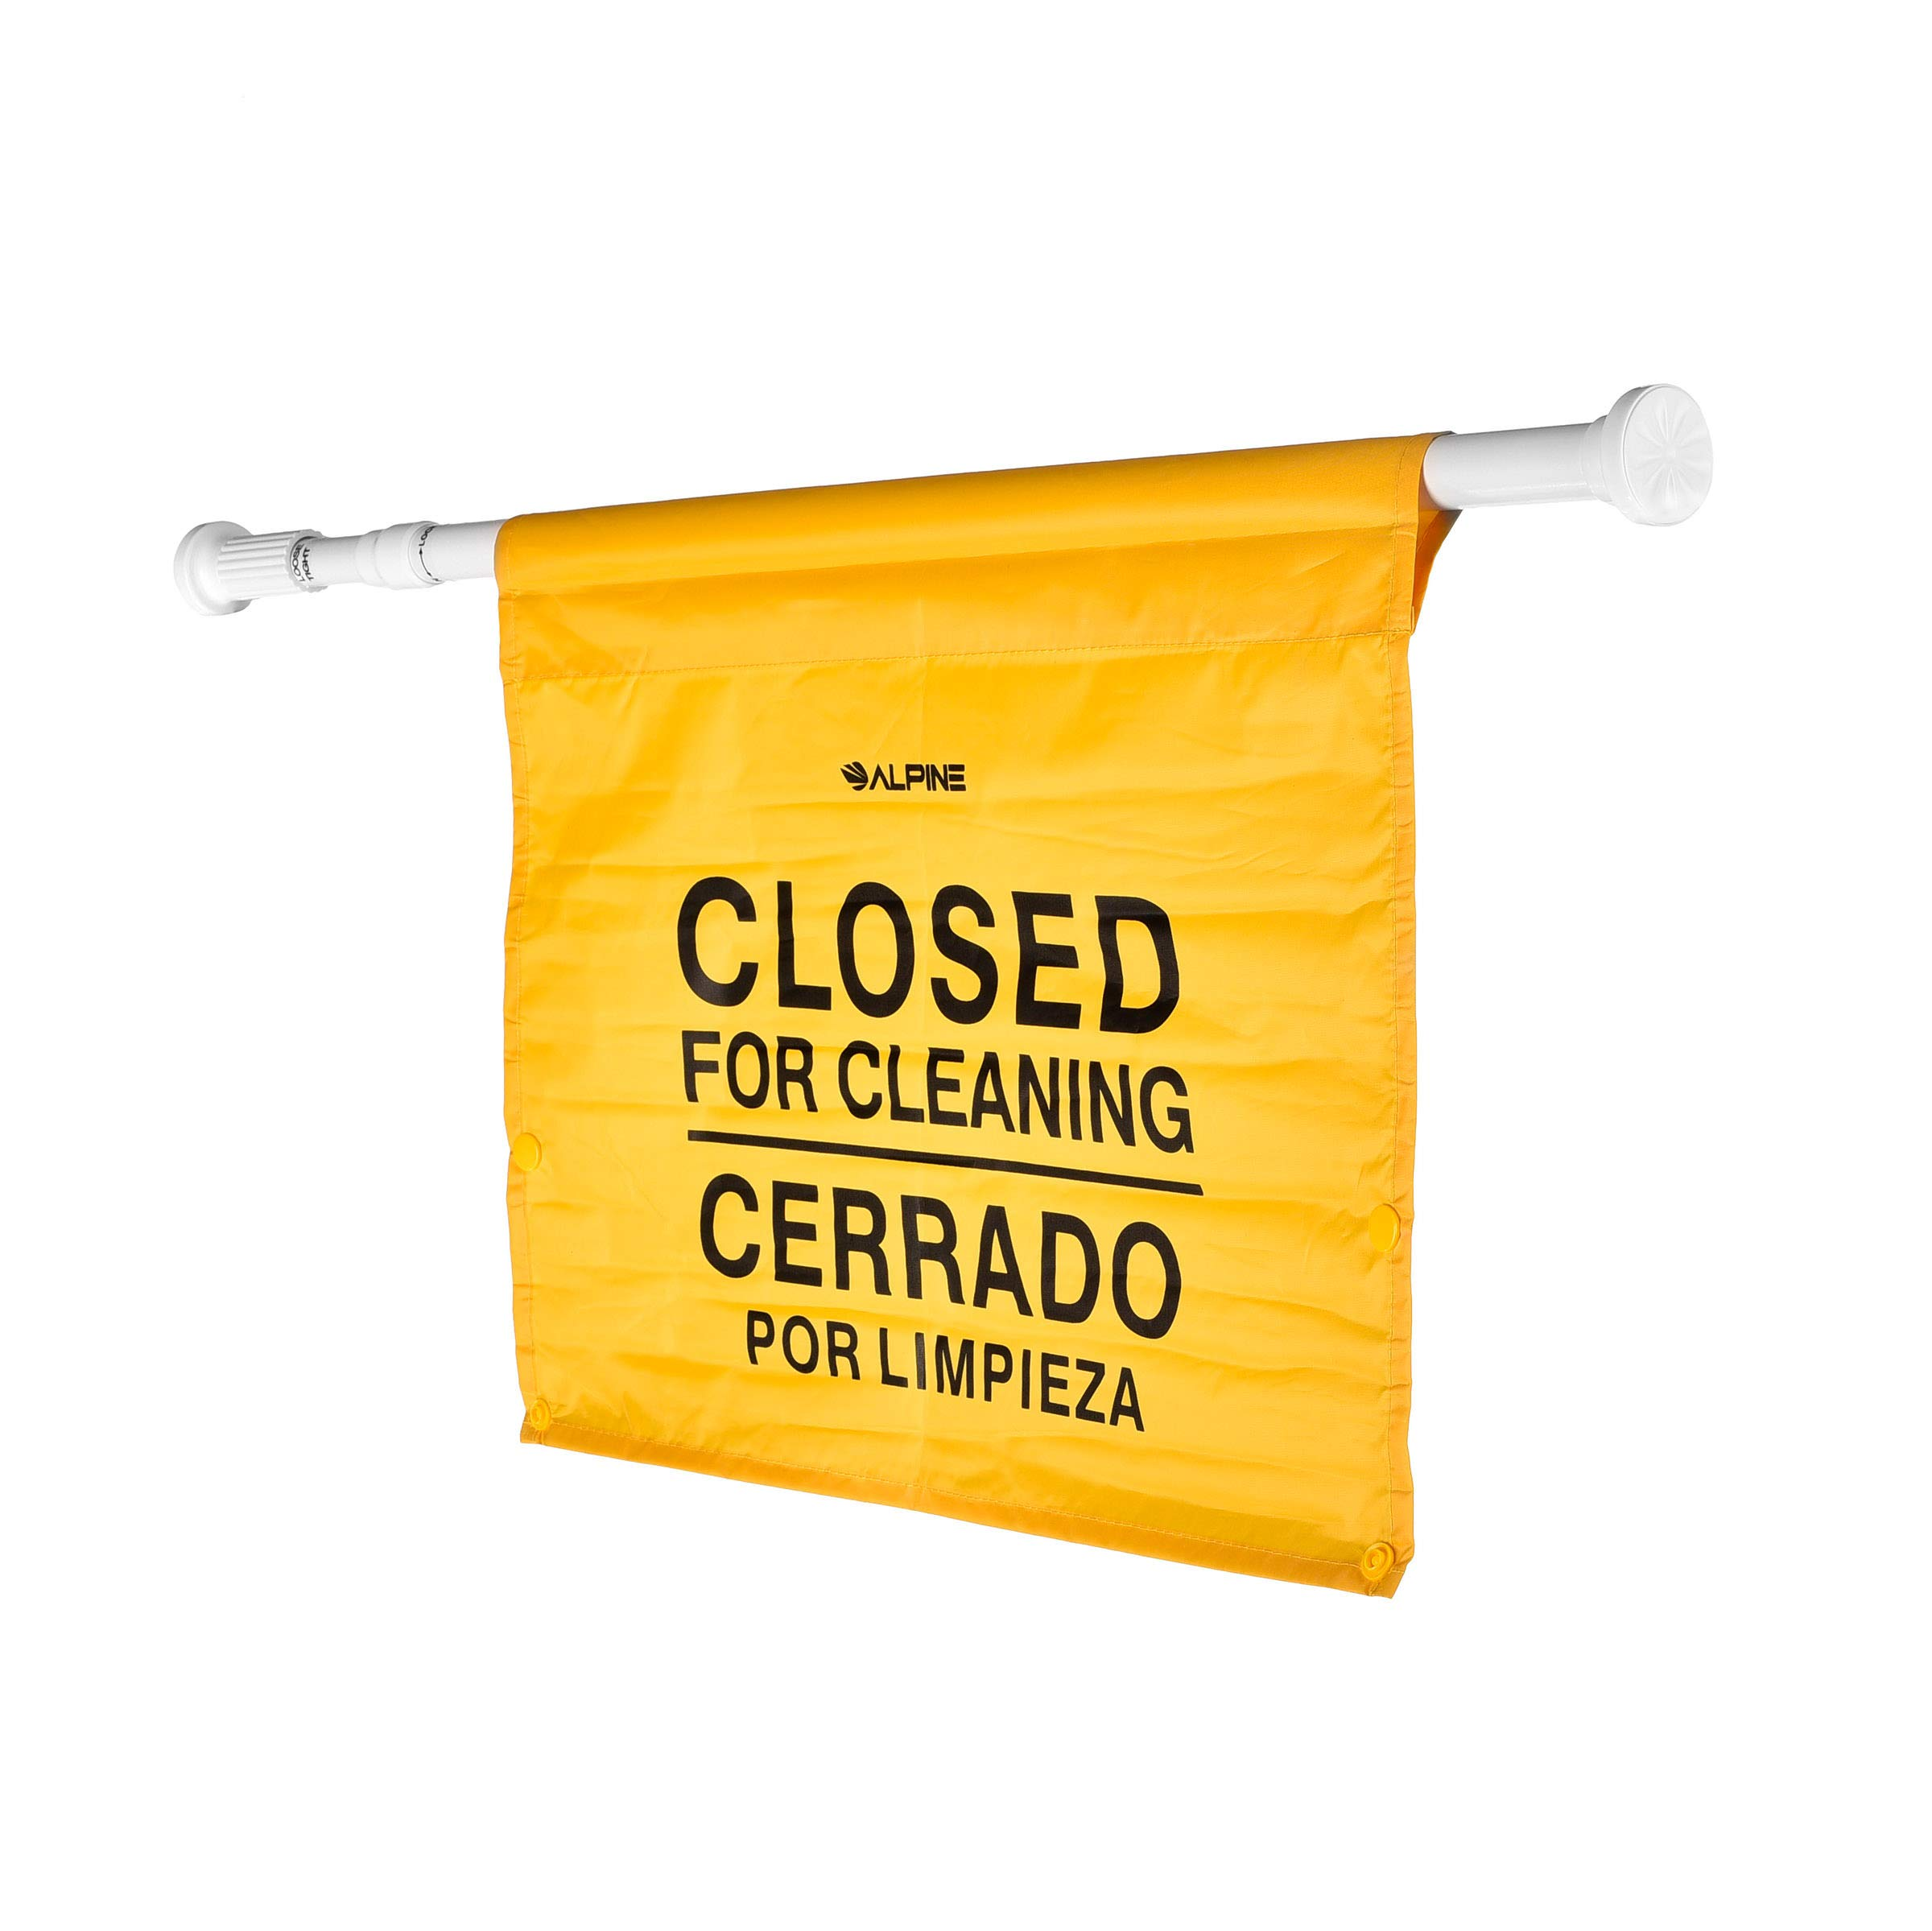 """Alpine Industries """"Closed for Cleaning"""" Hanging Safety Sign - Heavy Duty Warning Precaution - for Establishments and Commercial Use by Alpine Industries (Image #2)"""